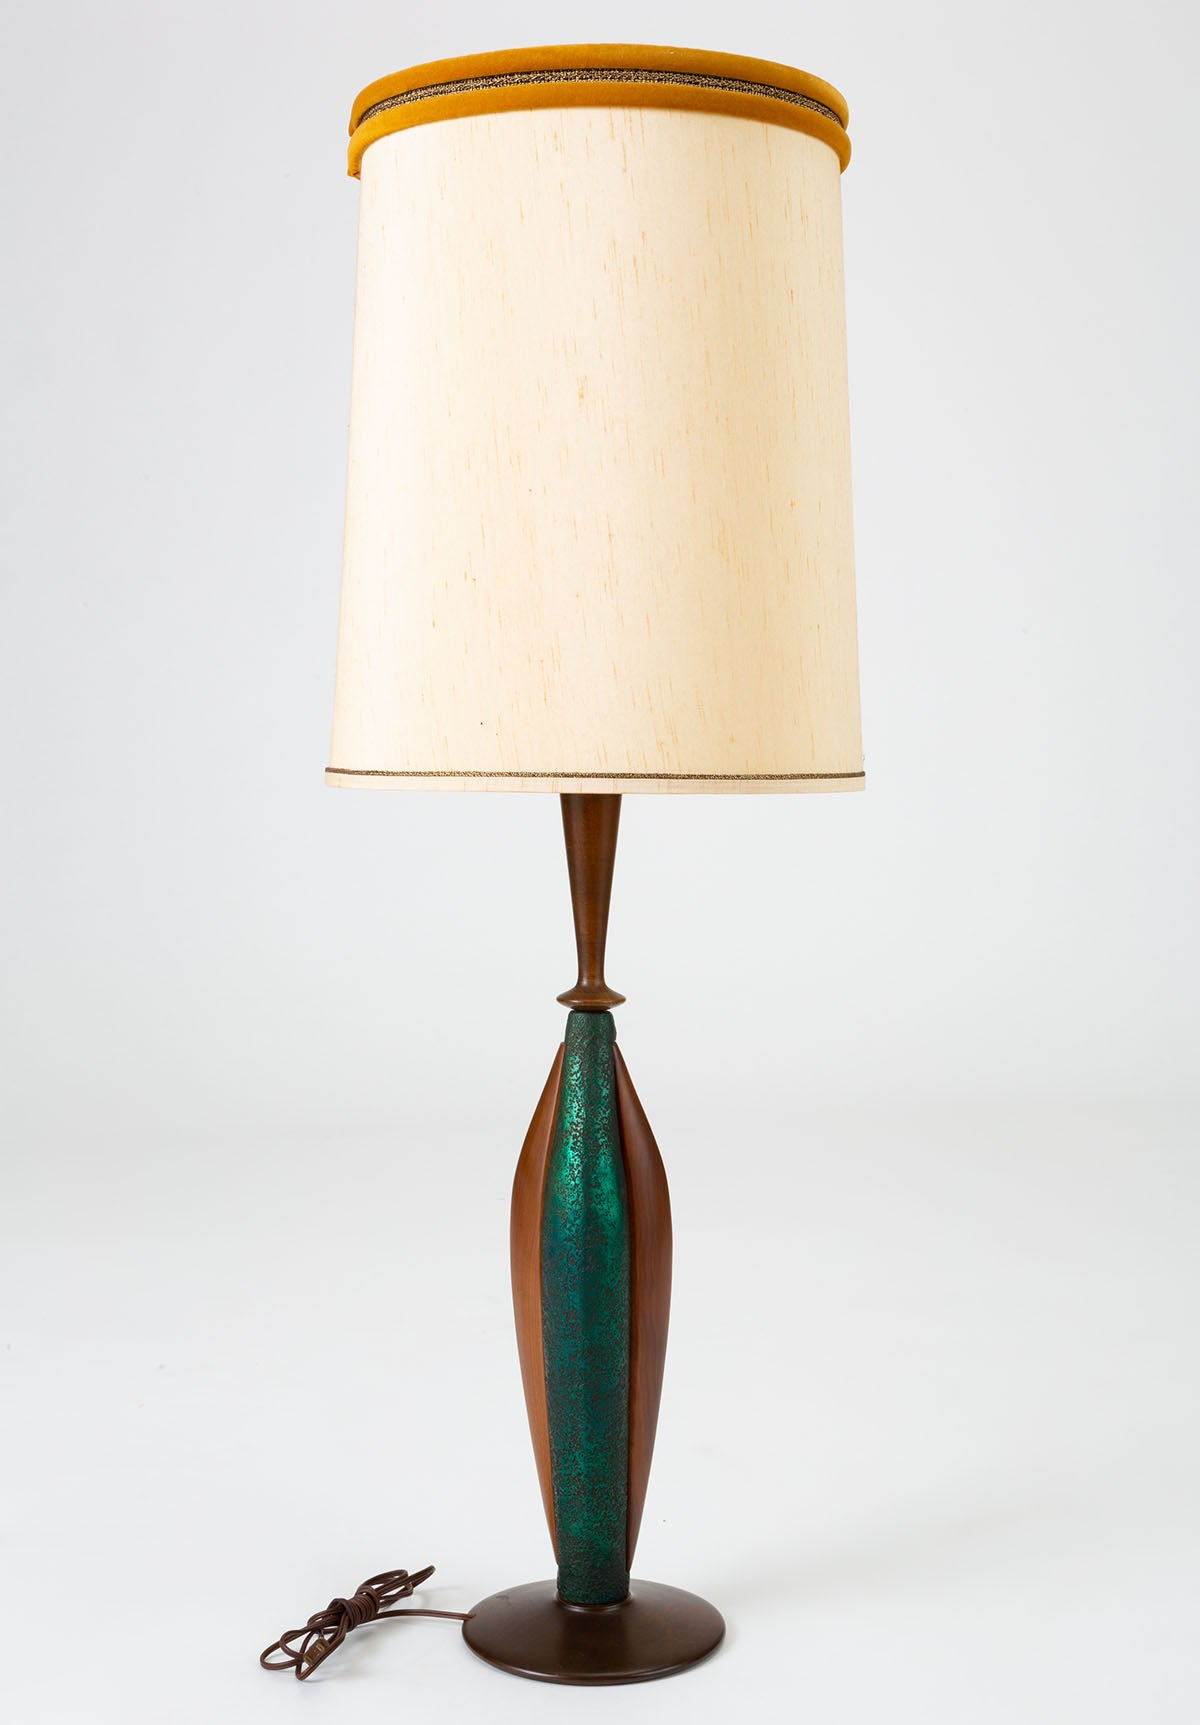 Pair of Moderna Tall Table Lamps in Walnut and Resin